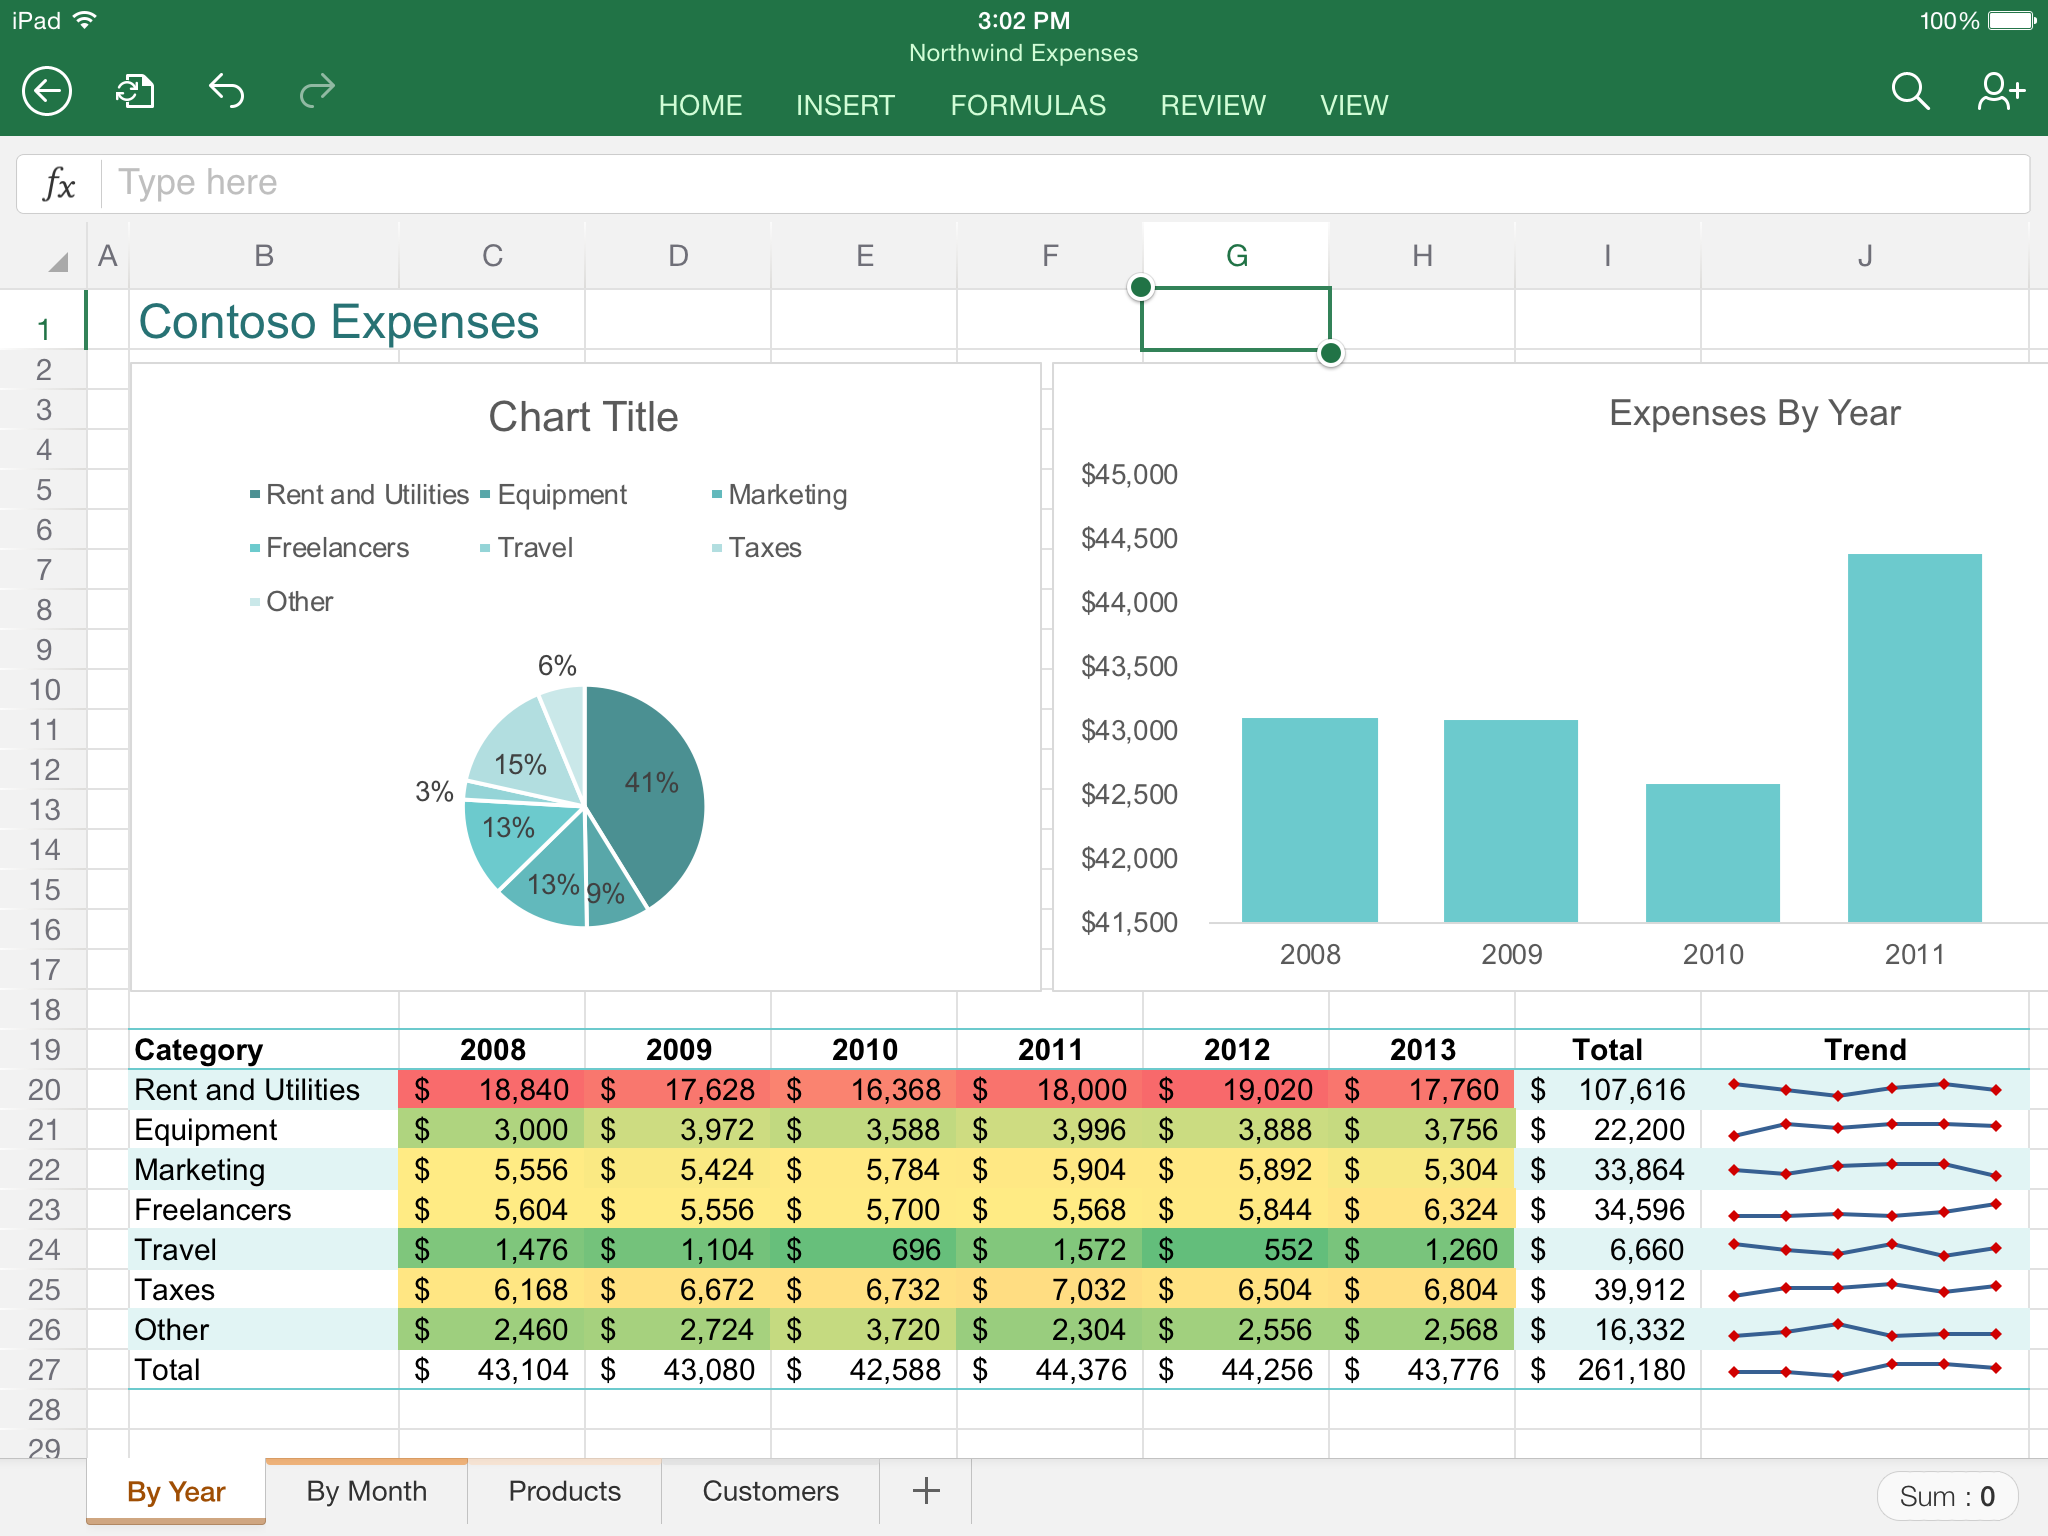 Ediblewildsus  Remarkable App Highlight Excel  Mobile Digital Now With Foxy Excel In Action With Astounding Adding Percentages In Excel Also Microsoft Excel  Free Download For Android In Addition Unlock Macro Password In Excel And What Is Excel Extension As Well As Where Can I Get Excel For Free Additionally Weighted Moving Average Formula Excel From Youstonybrookedu With Ediblewildsus  Foxy App Highlight Excel  Mobile Digital Now With Astounding Excel In Action And Remarkable Adding Percentages In Excel Also Microsoft Excel  Free Download For Android In Addition Unlock Macro Password In Excel From Youstonybrookedu